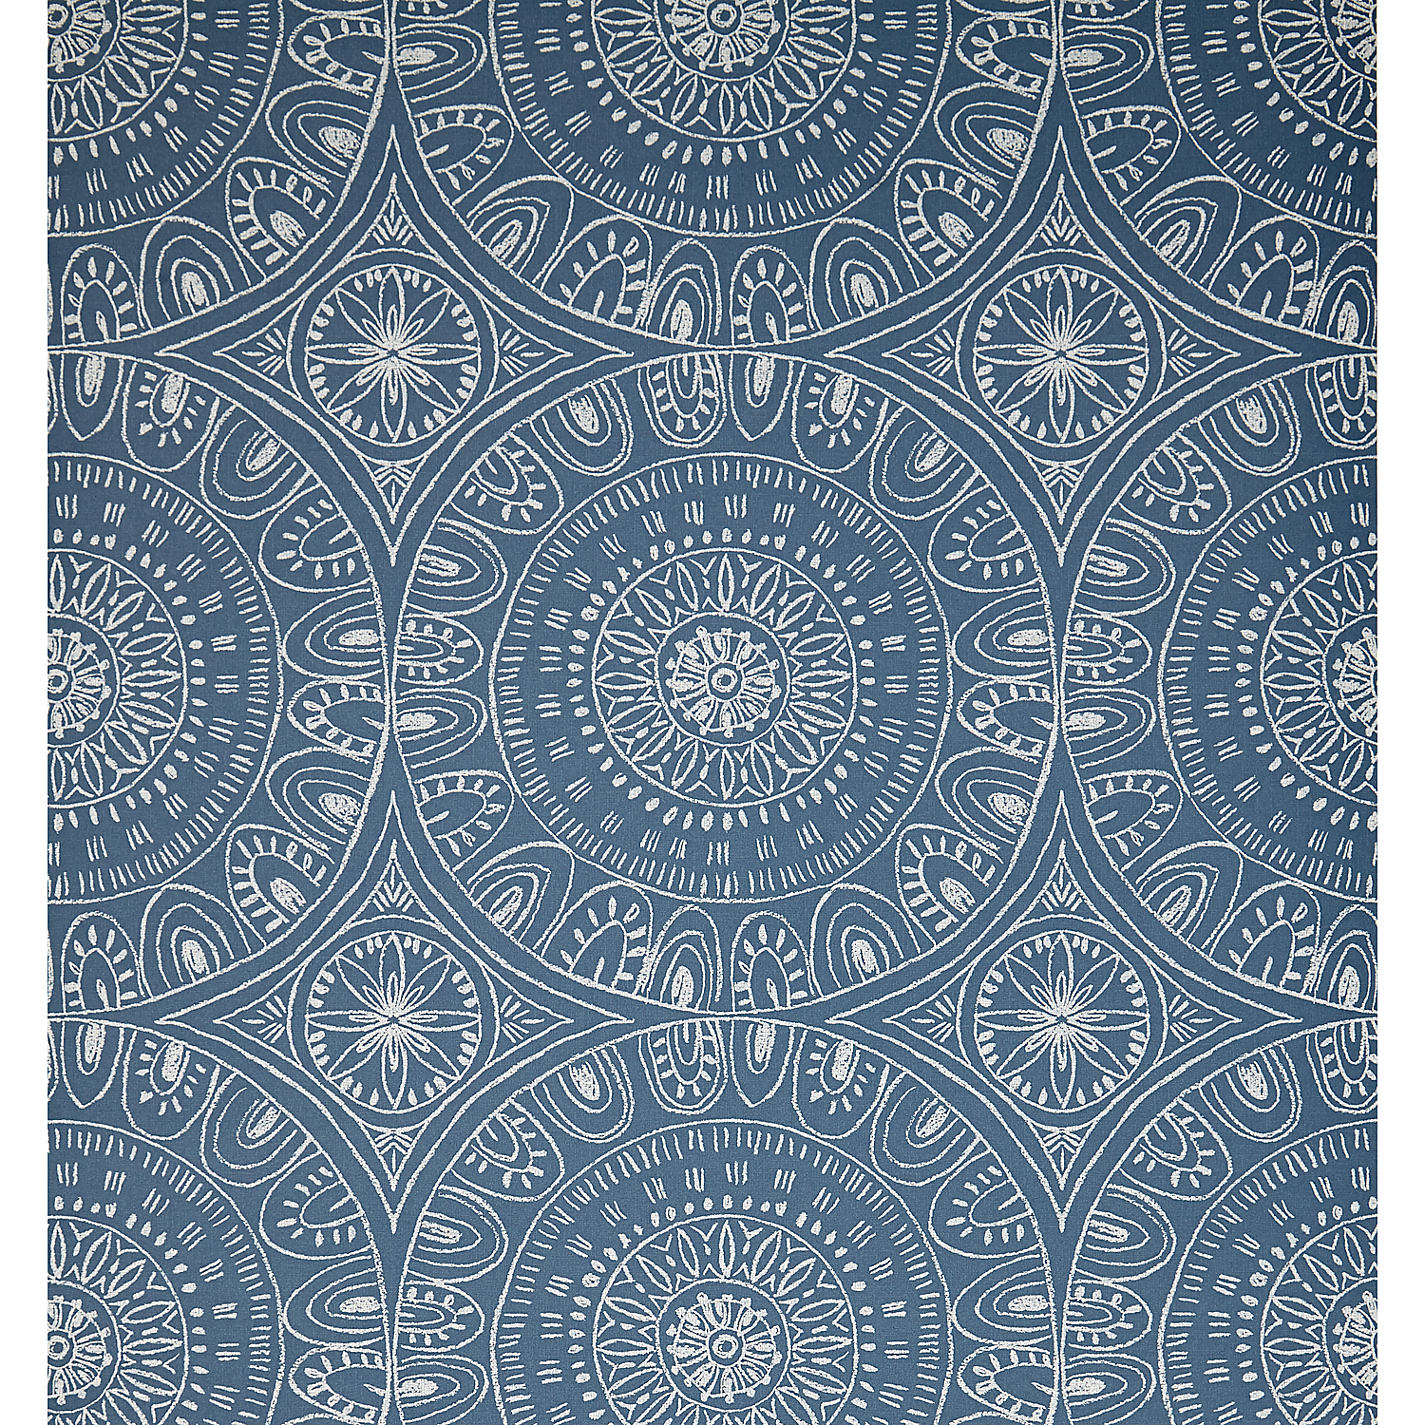 Buy john lewis persia wallpaper john lewis buy john lewis persia wallpaper online at johnlewis gumiabroncs Images